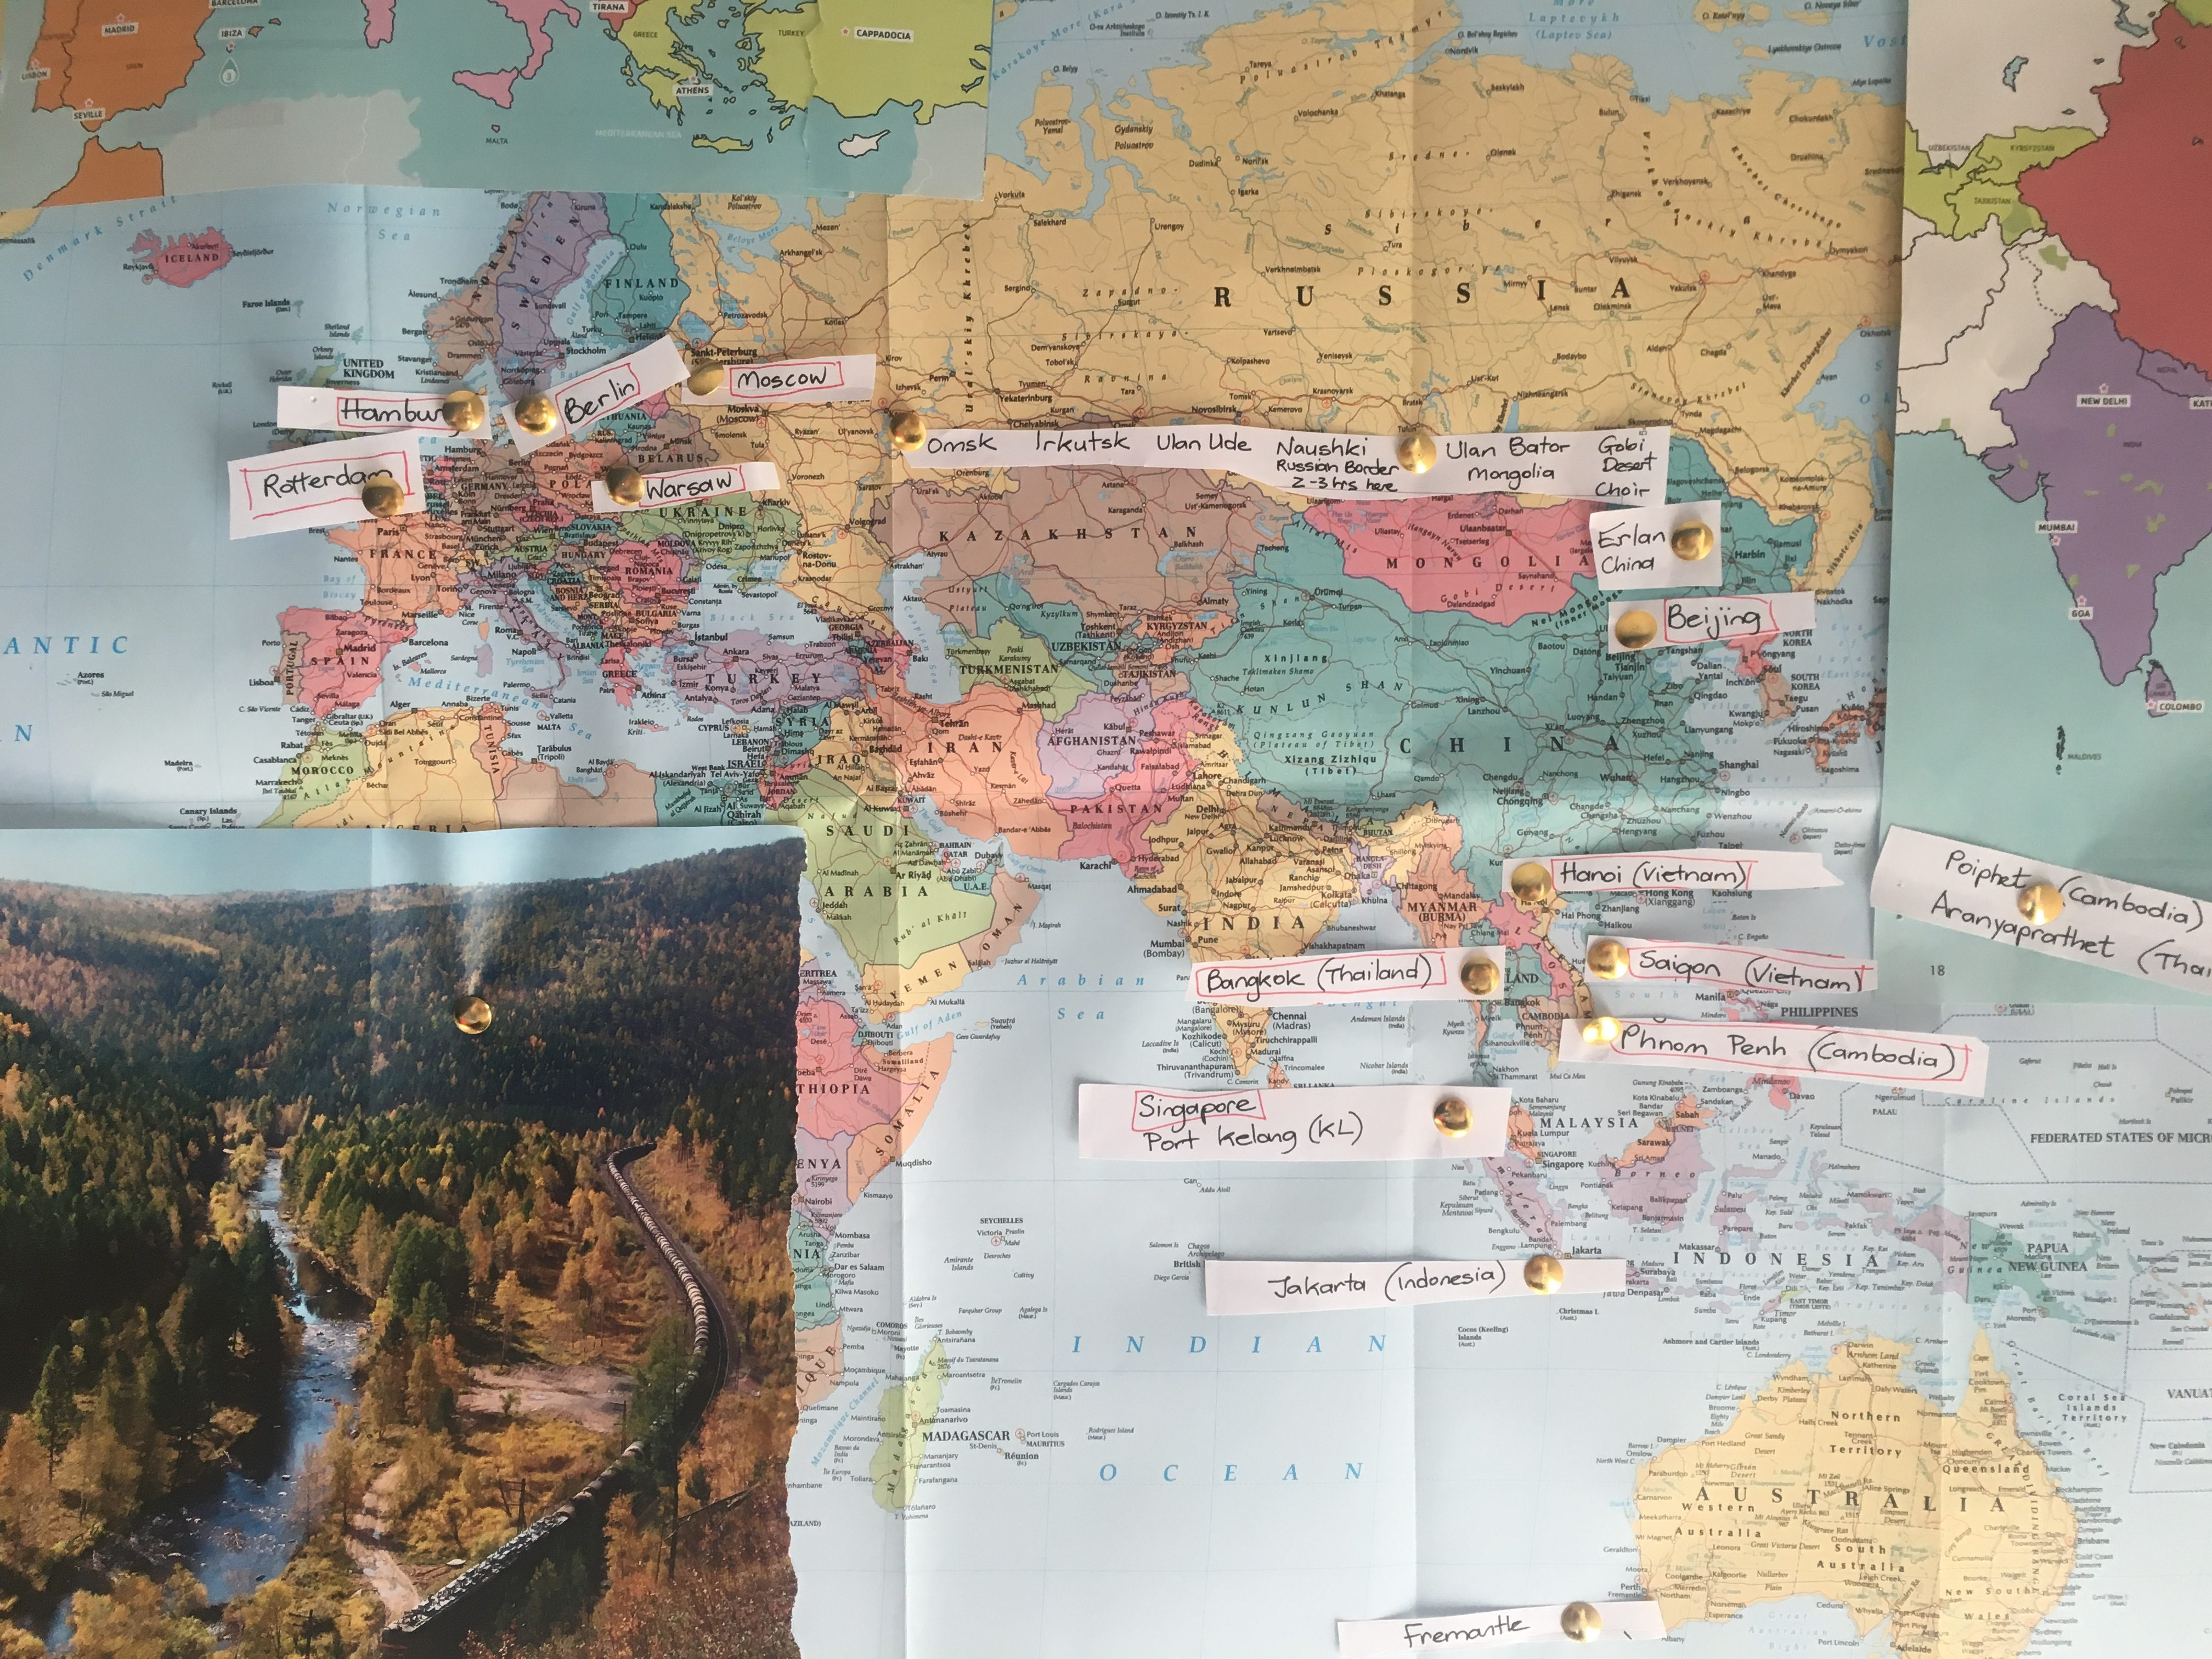 Map of half a world showing possible route from UK to Oz